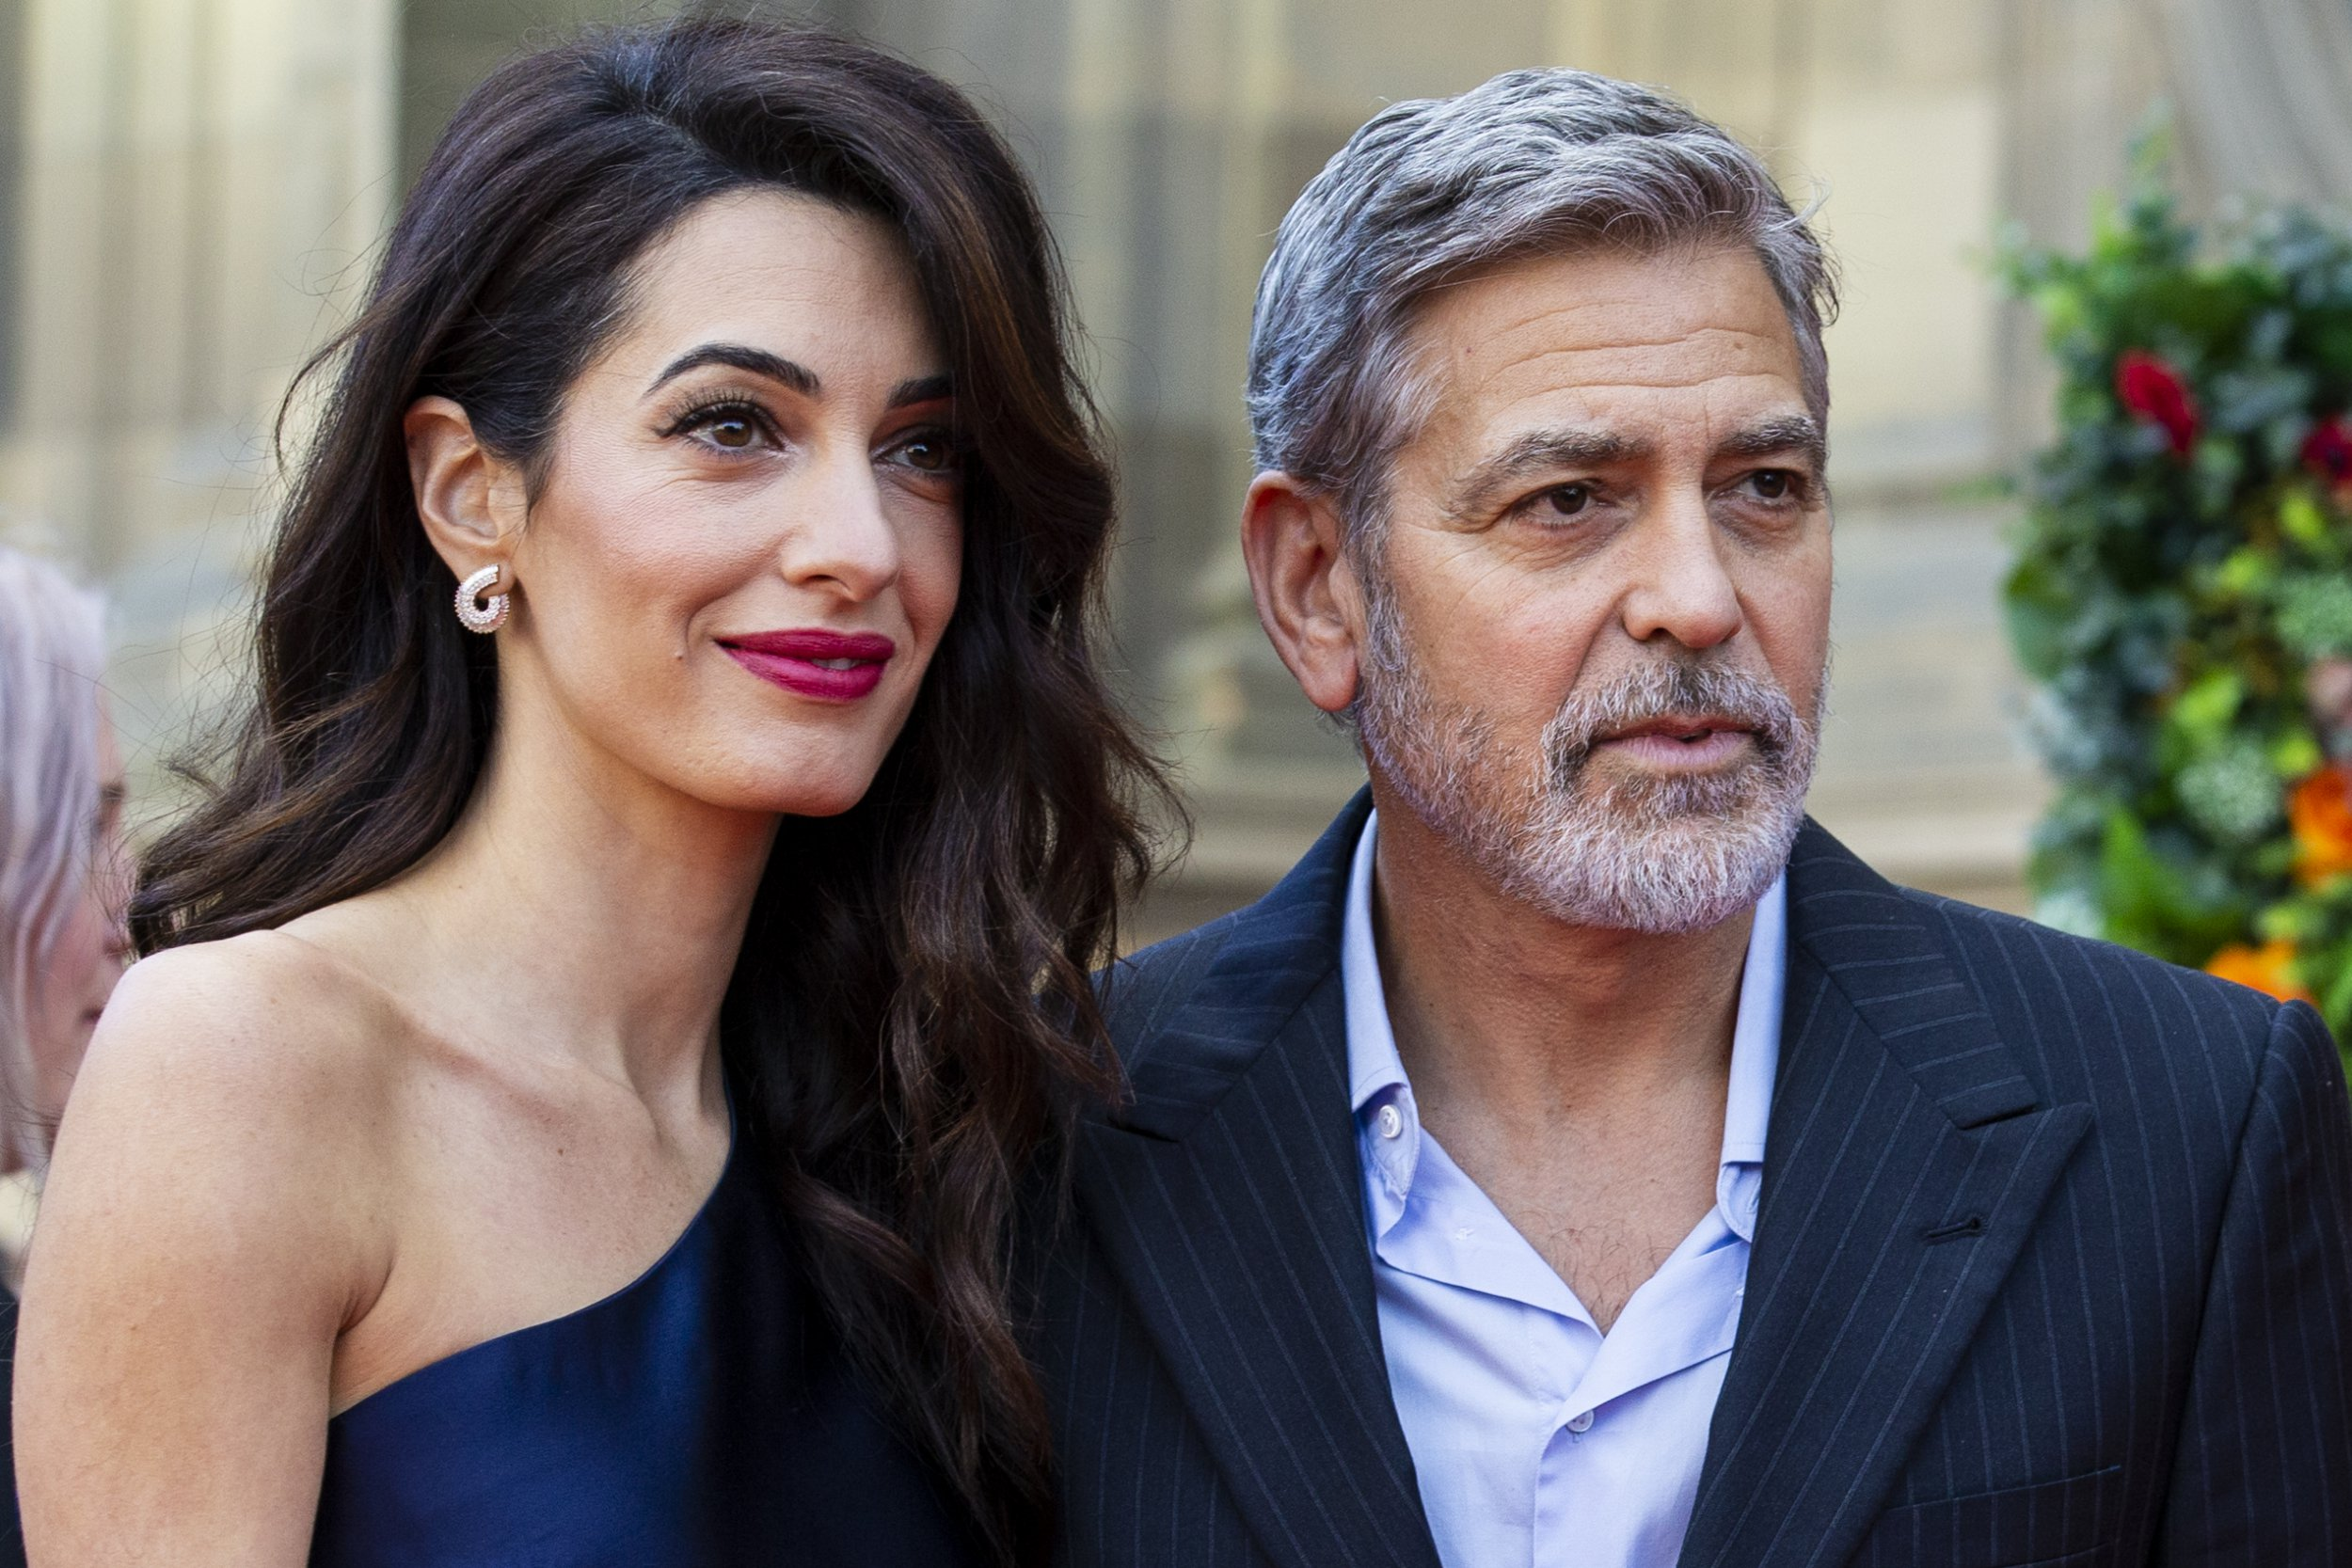 EDINBURGH, SCOTLAND - MARCH 14: George and Amal Clooney attend the Peoples Postcode Lottery Charity Gala at McEwan Hall on March 15, 2019 in Edinburgh, Scotland. The couple will be honoured for their international humanitarian work through the Clooney Foundation for Justice. (Photo by Duncan McGlynn/Getty Images)